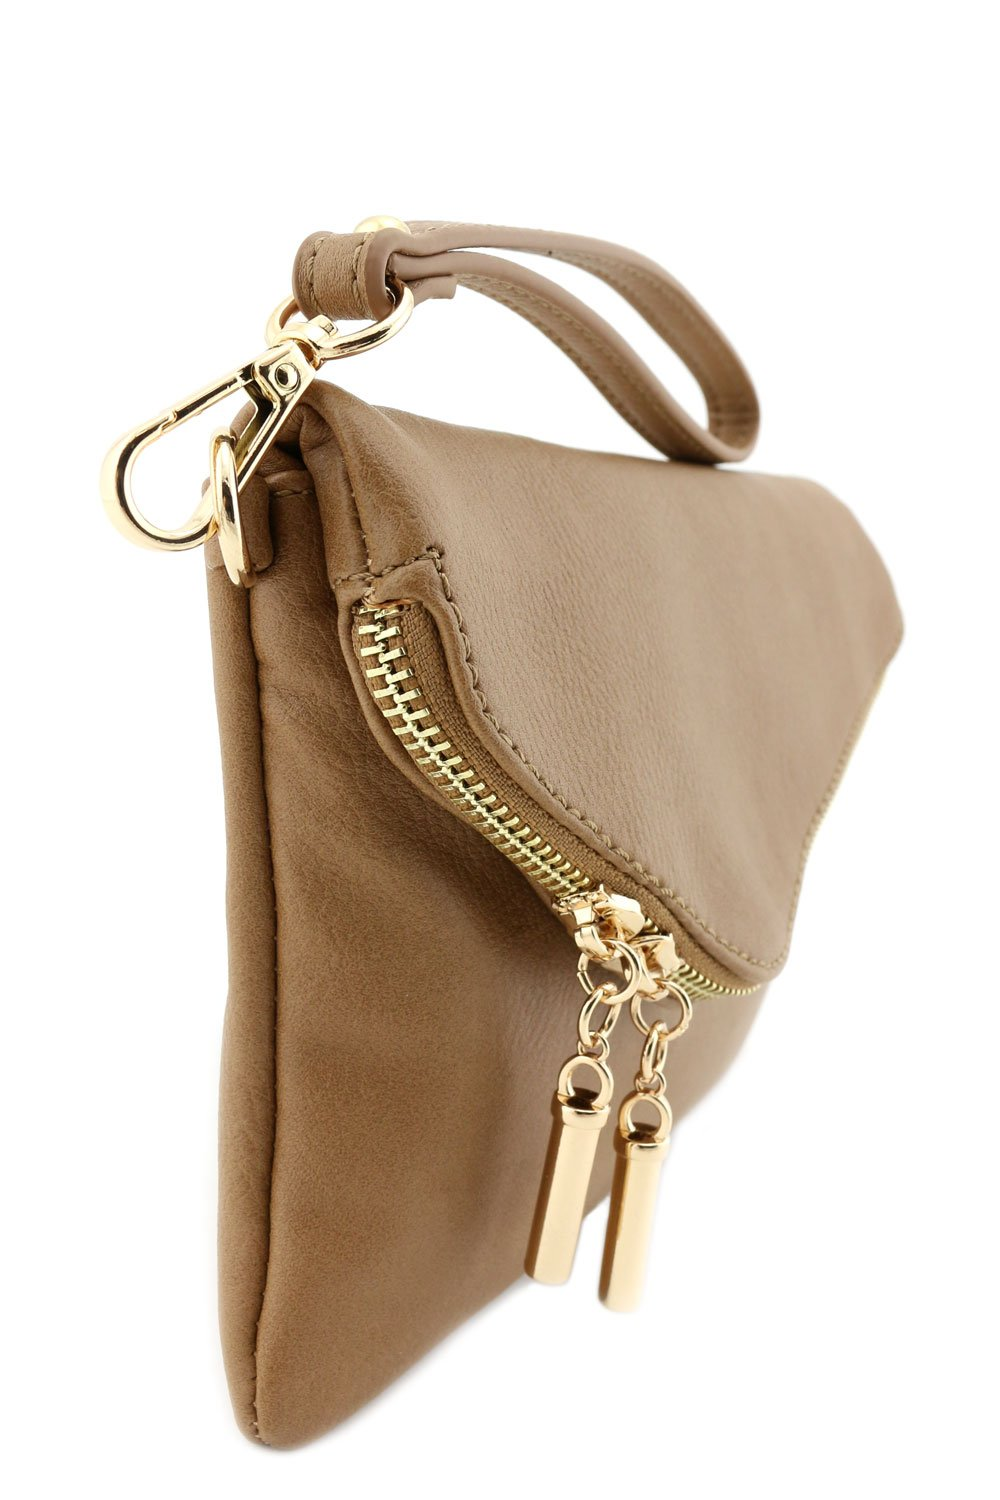 Envelope Wristlet Clutch Crossbody Bag with Chain Strap Stone by FashionPuzzle (Image #3)